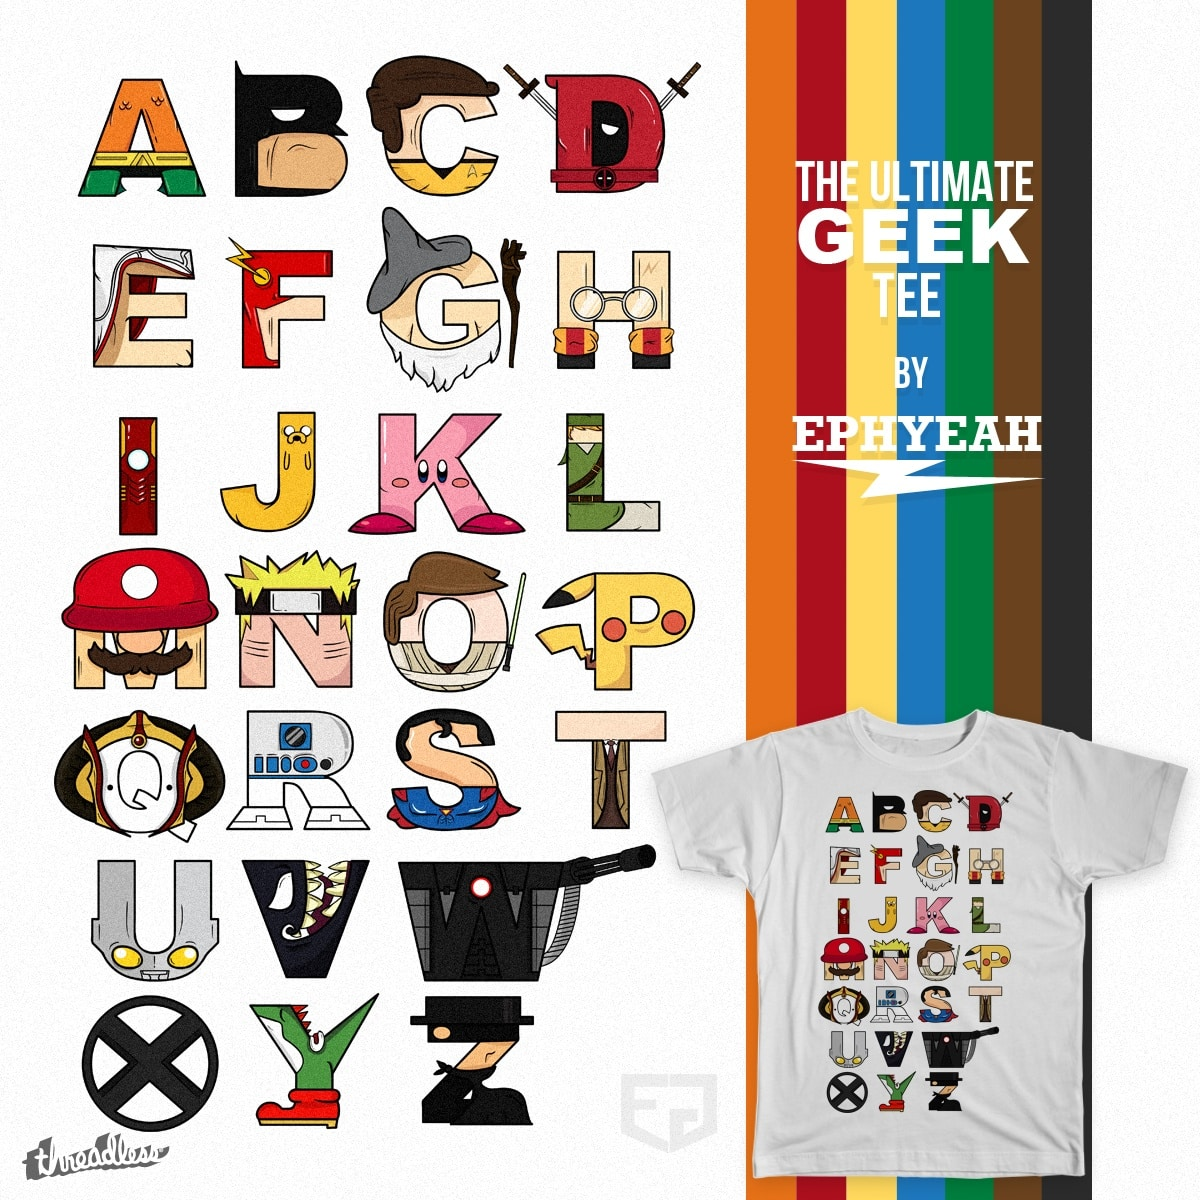 The Ultimate Geek Tee by Ephyeah on Threadless